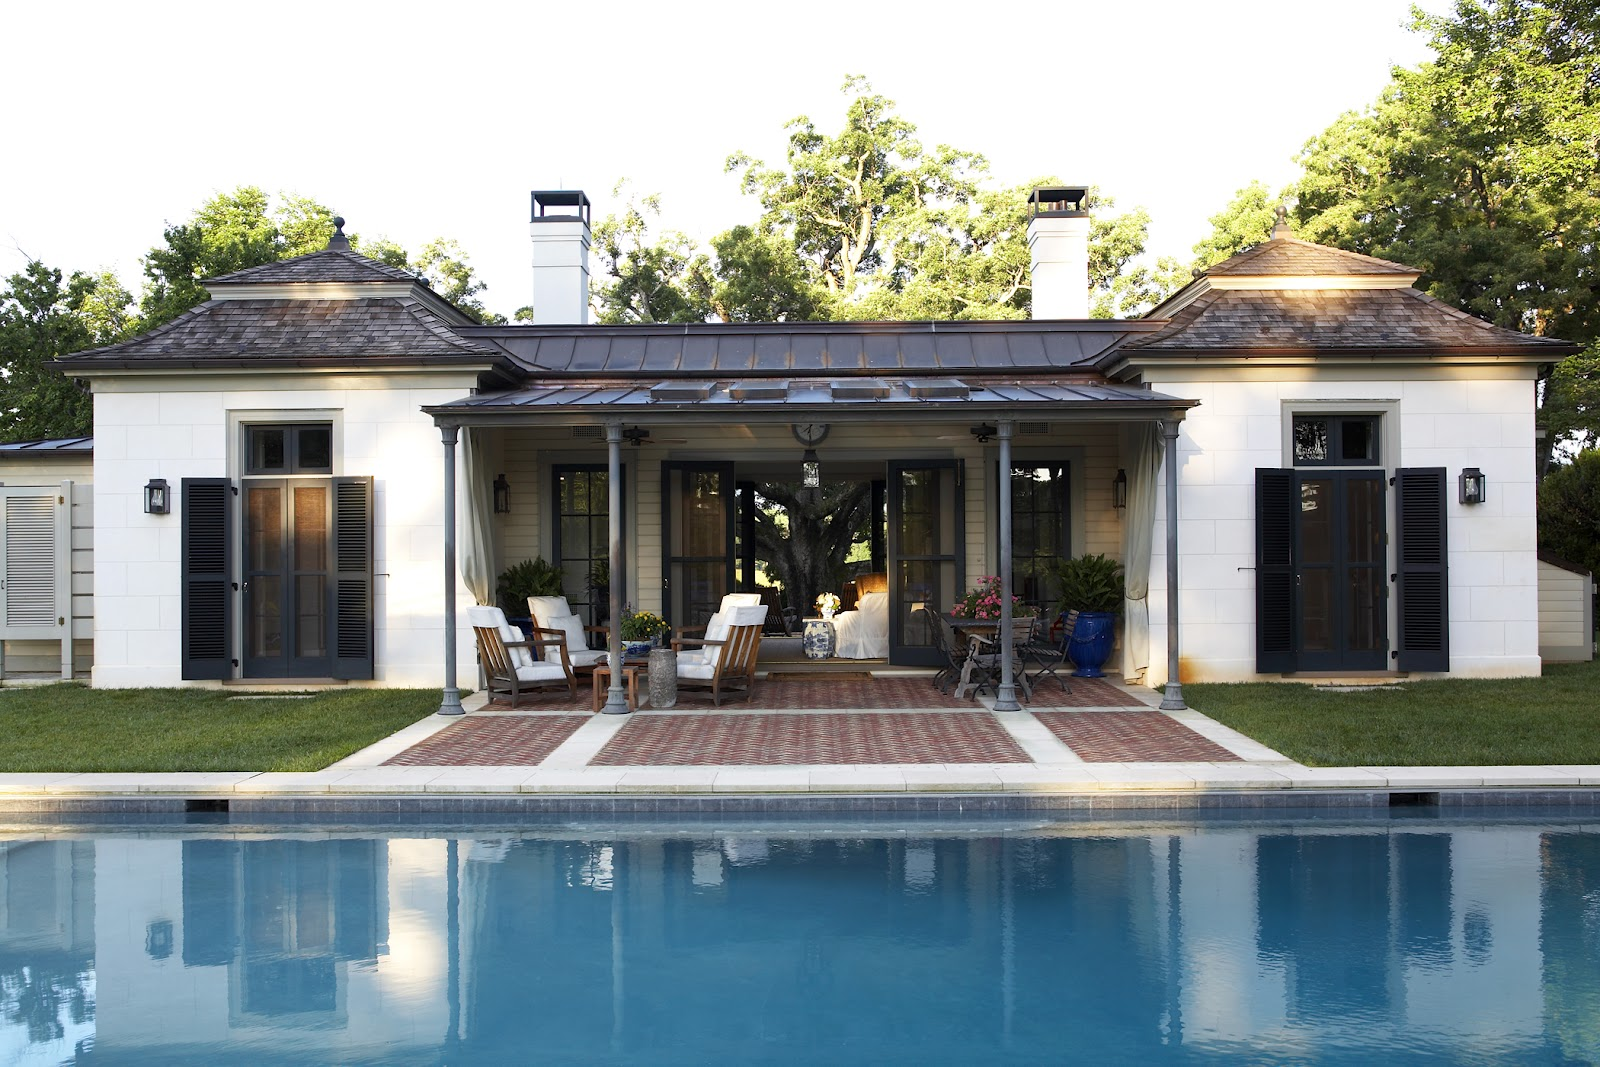 Pools on pinterest pool houses swimming pools and lap pools for Best pool houses